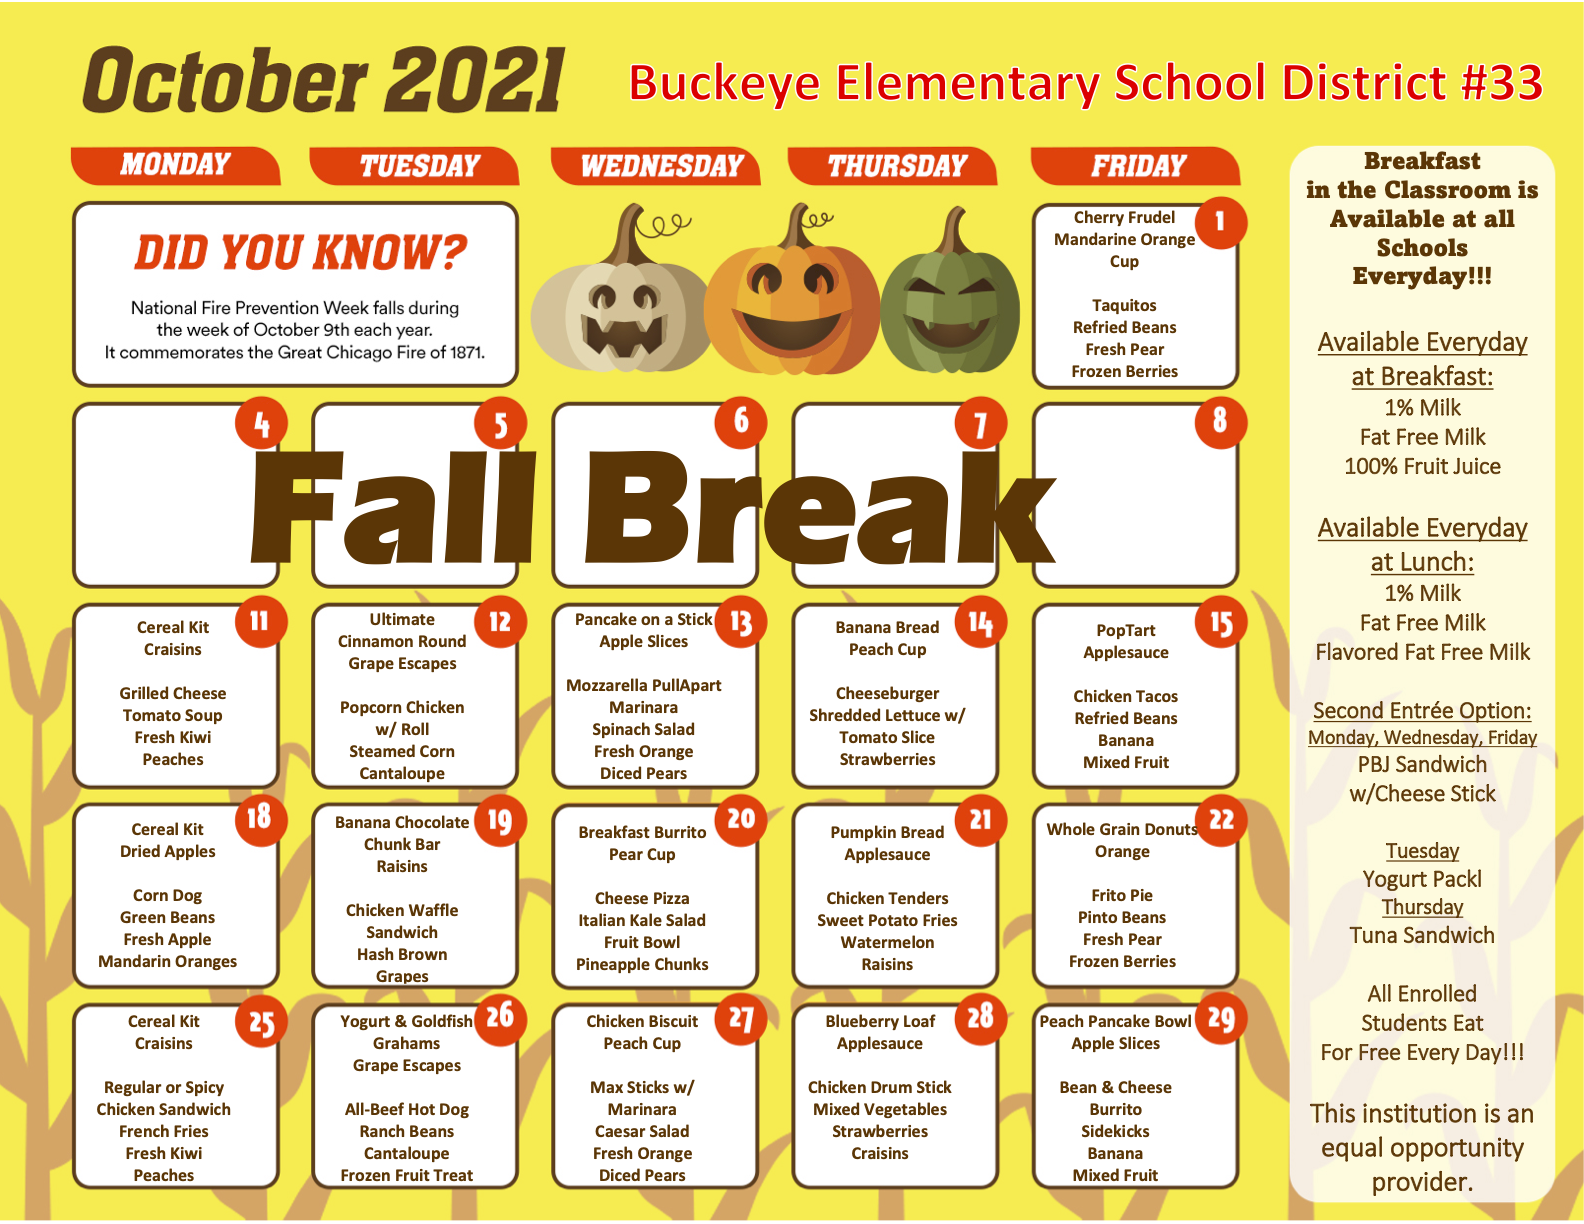 Pdf version of October 2021 menu is located on the bottom right hand corner of this image. Pdf will be linked to October Menu text